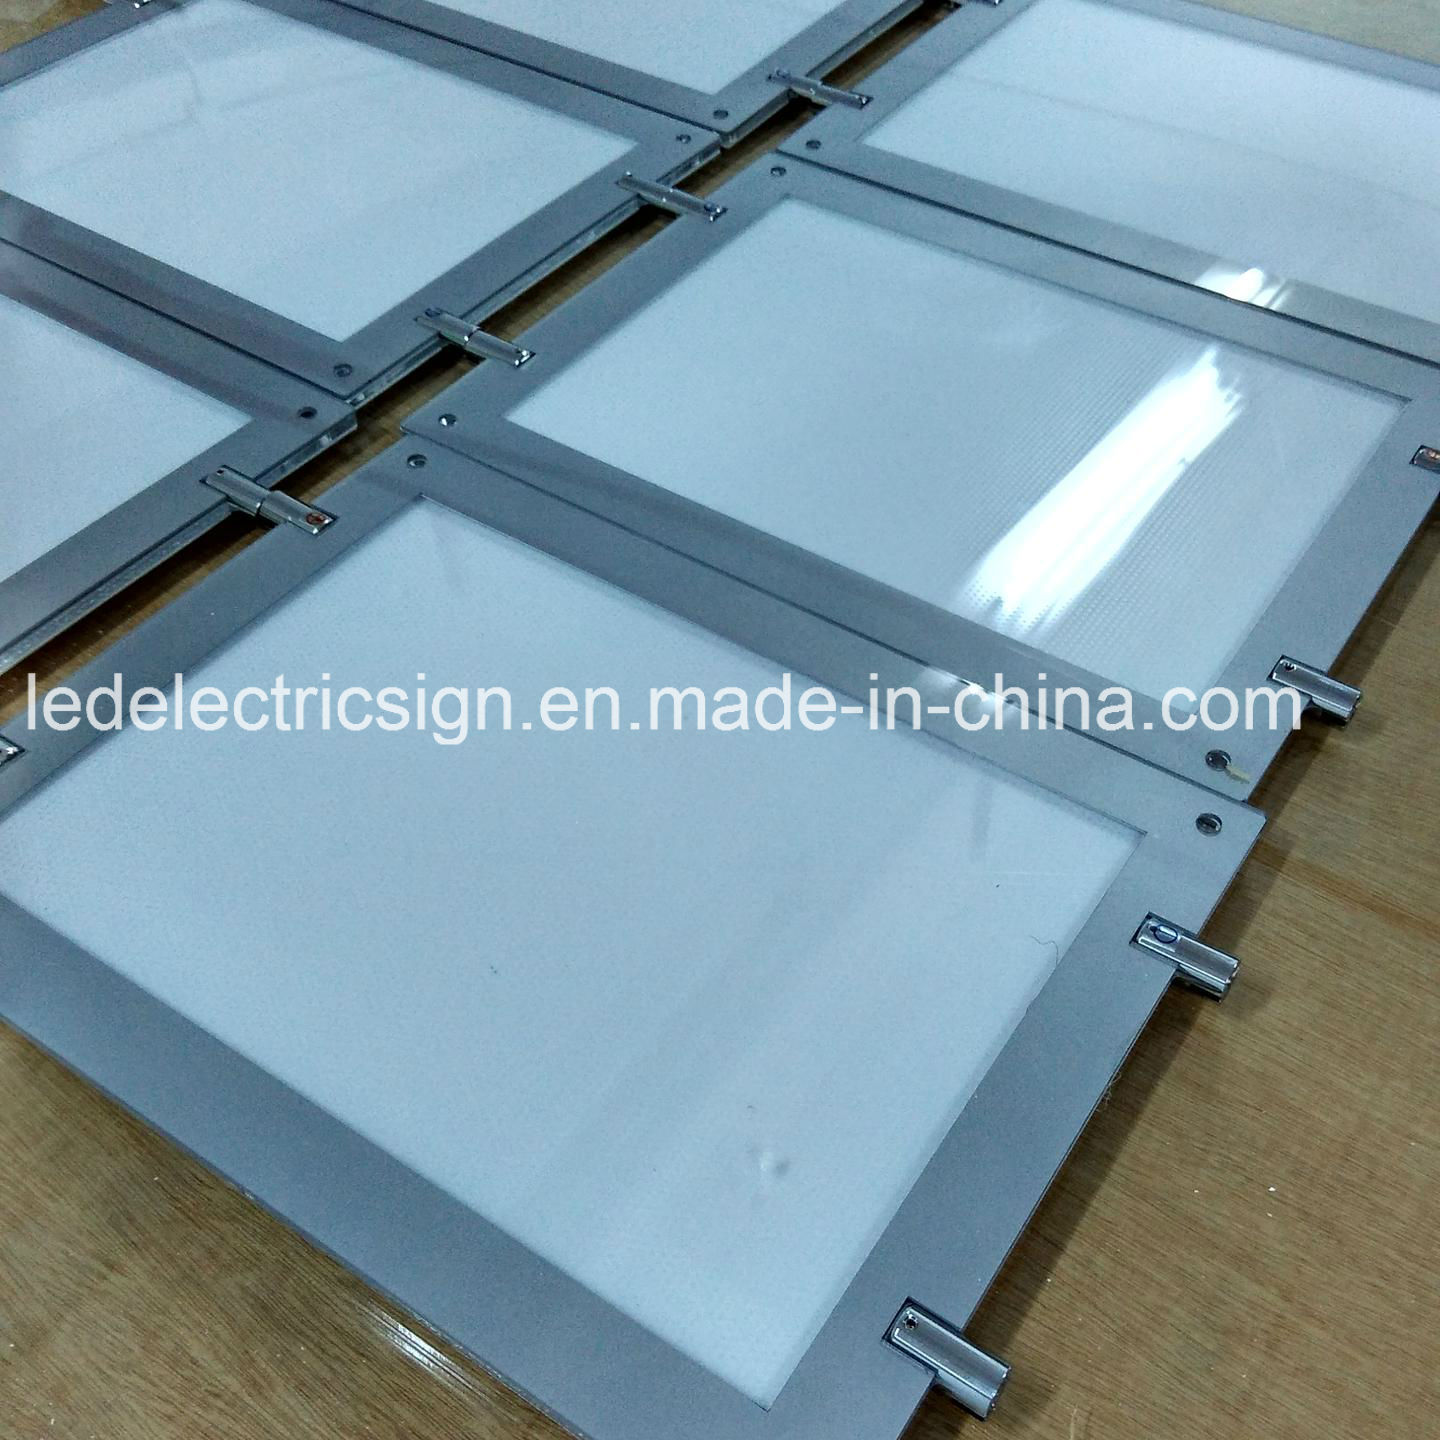 real estate window display light box with led acrylic frame in spain